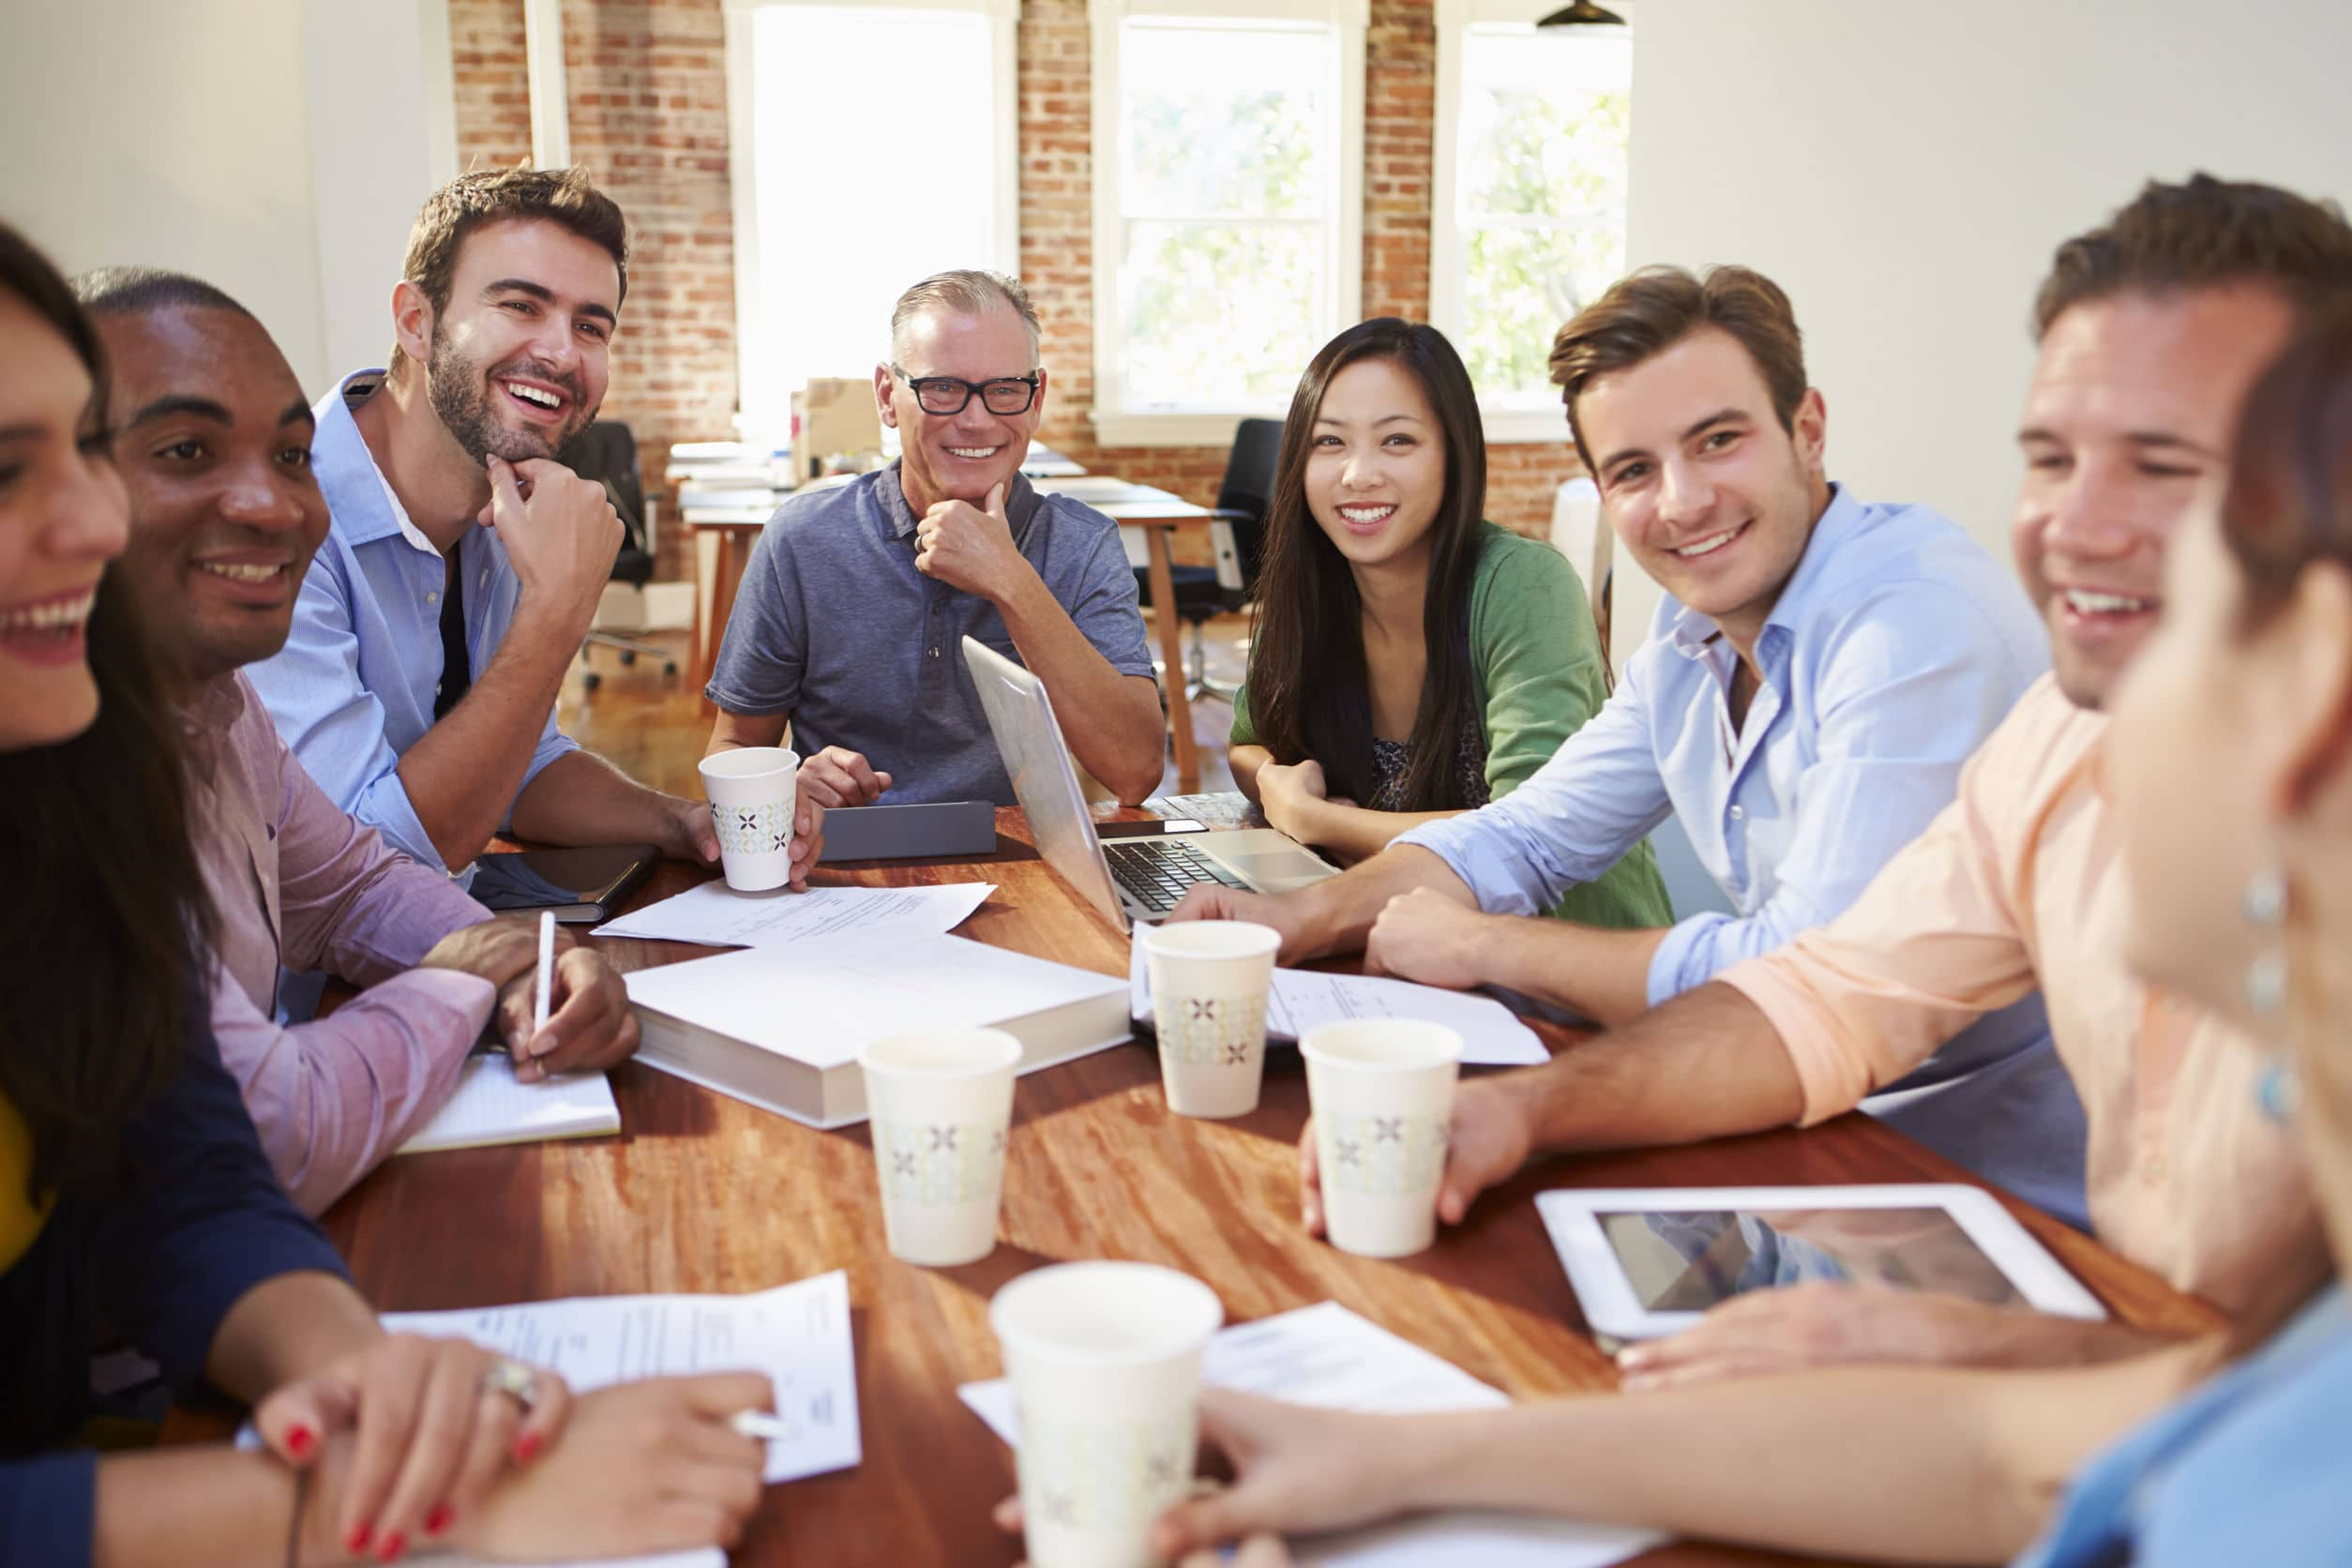 happy group of office workers in a meeting discussing ideas